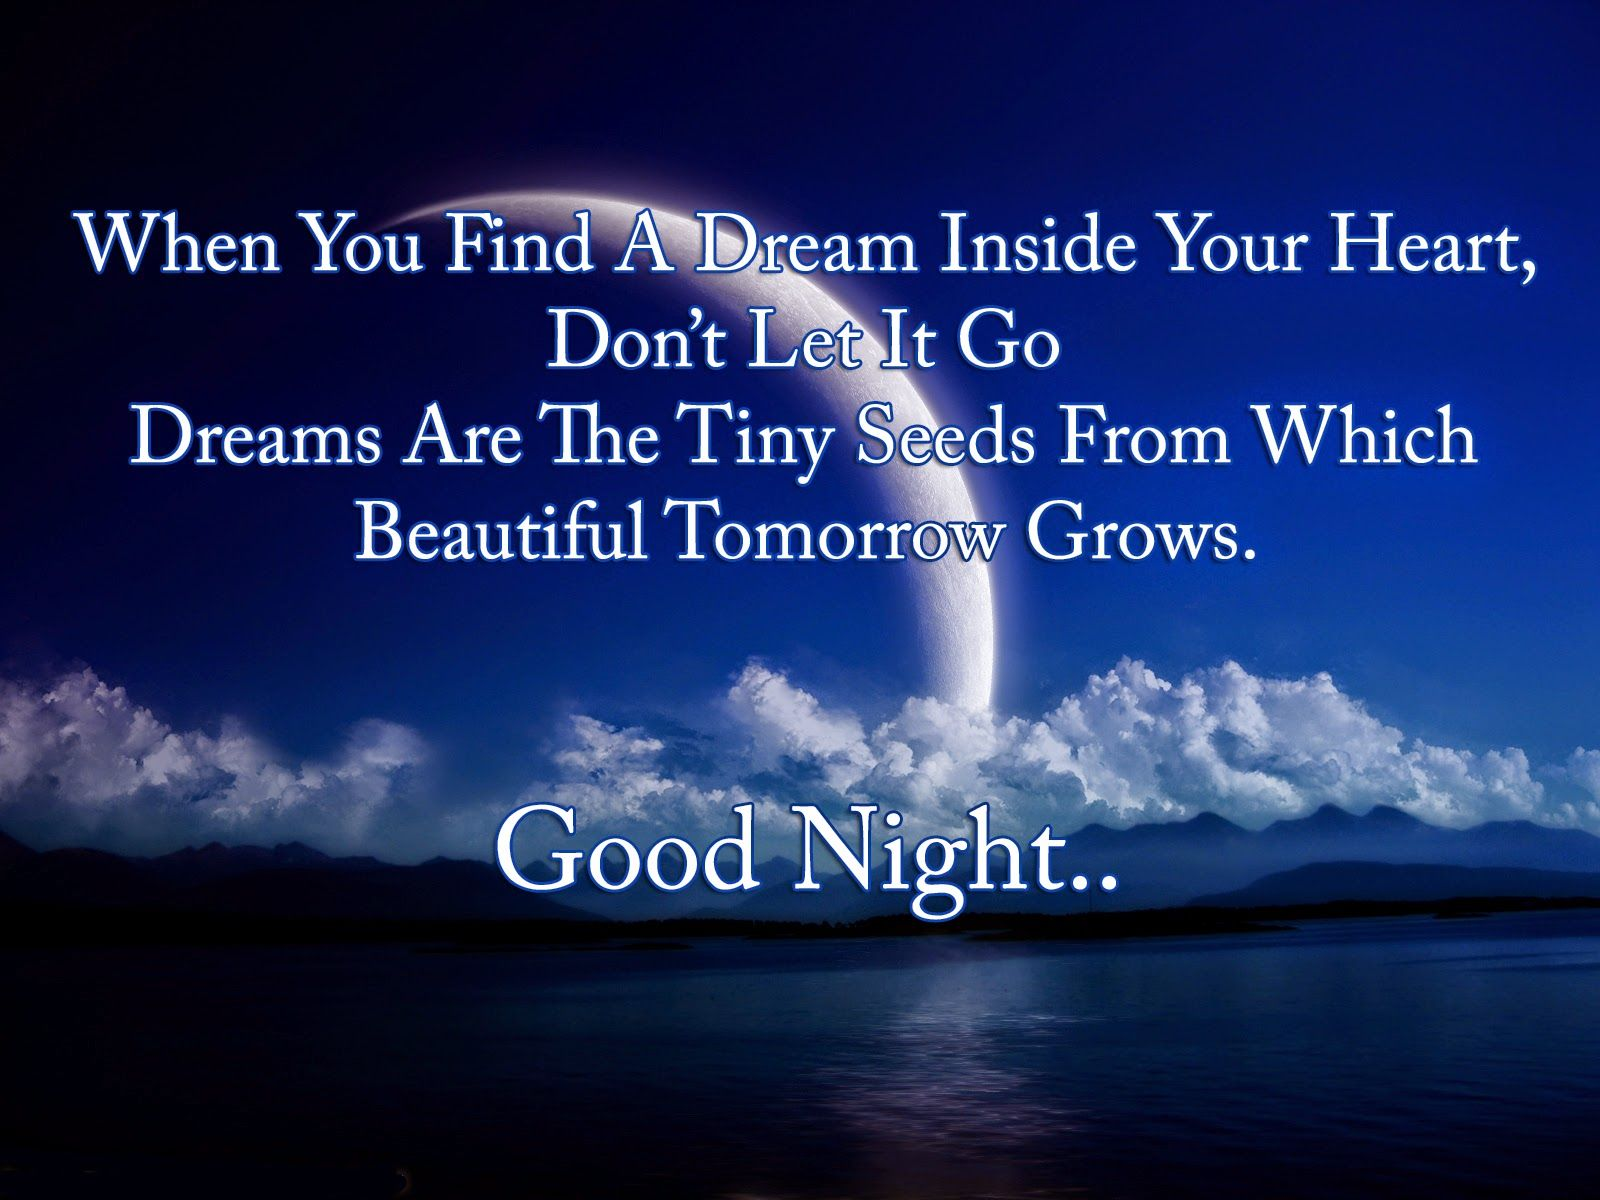 Love Quotes By Famous Poets Famous Good Night Love Quotes Greeting Photos  Sad Poetry  Pinterest